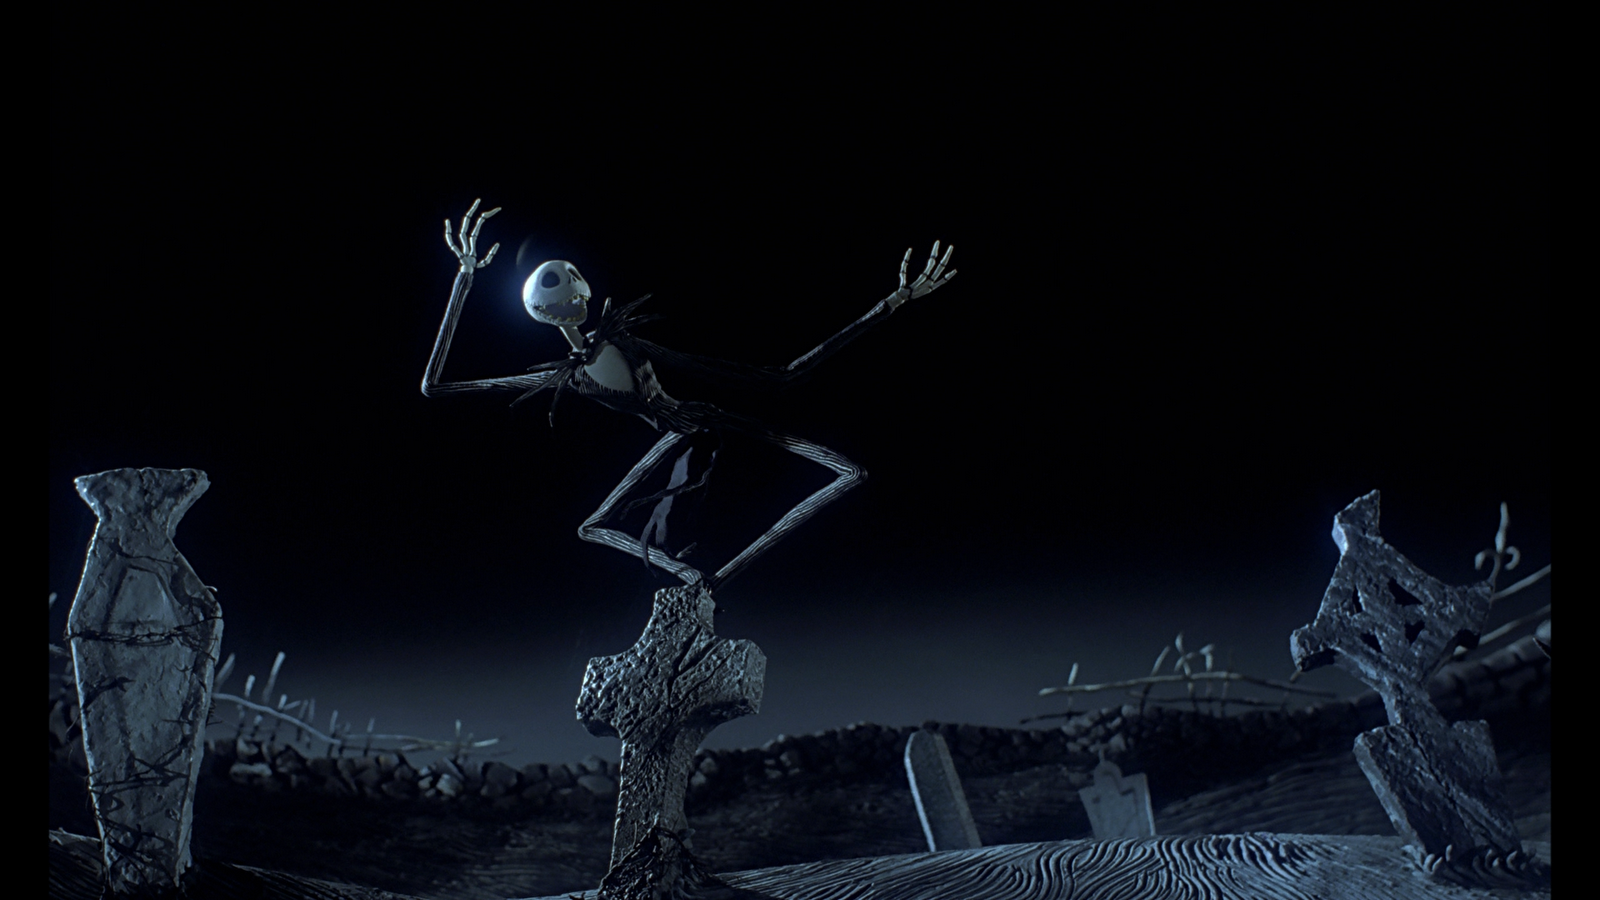 the nightmare before christmas wallpaper hd